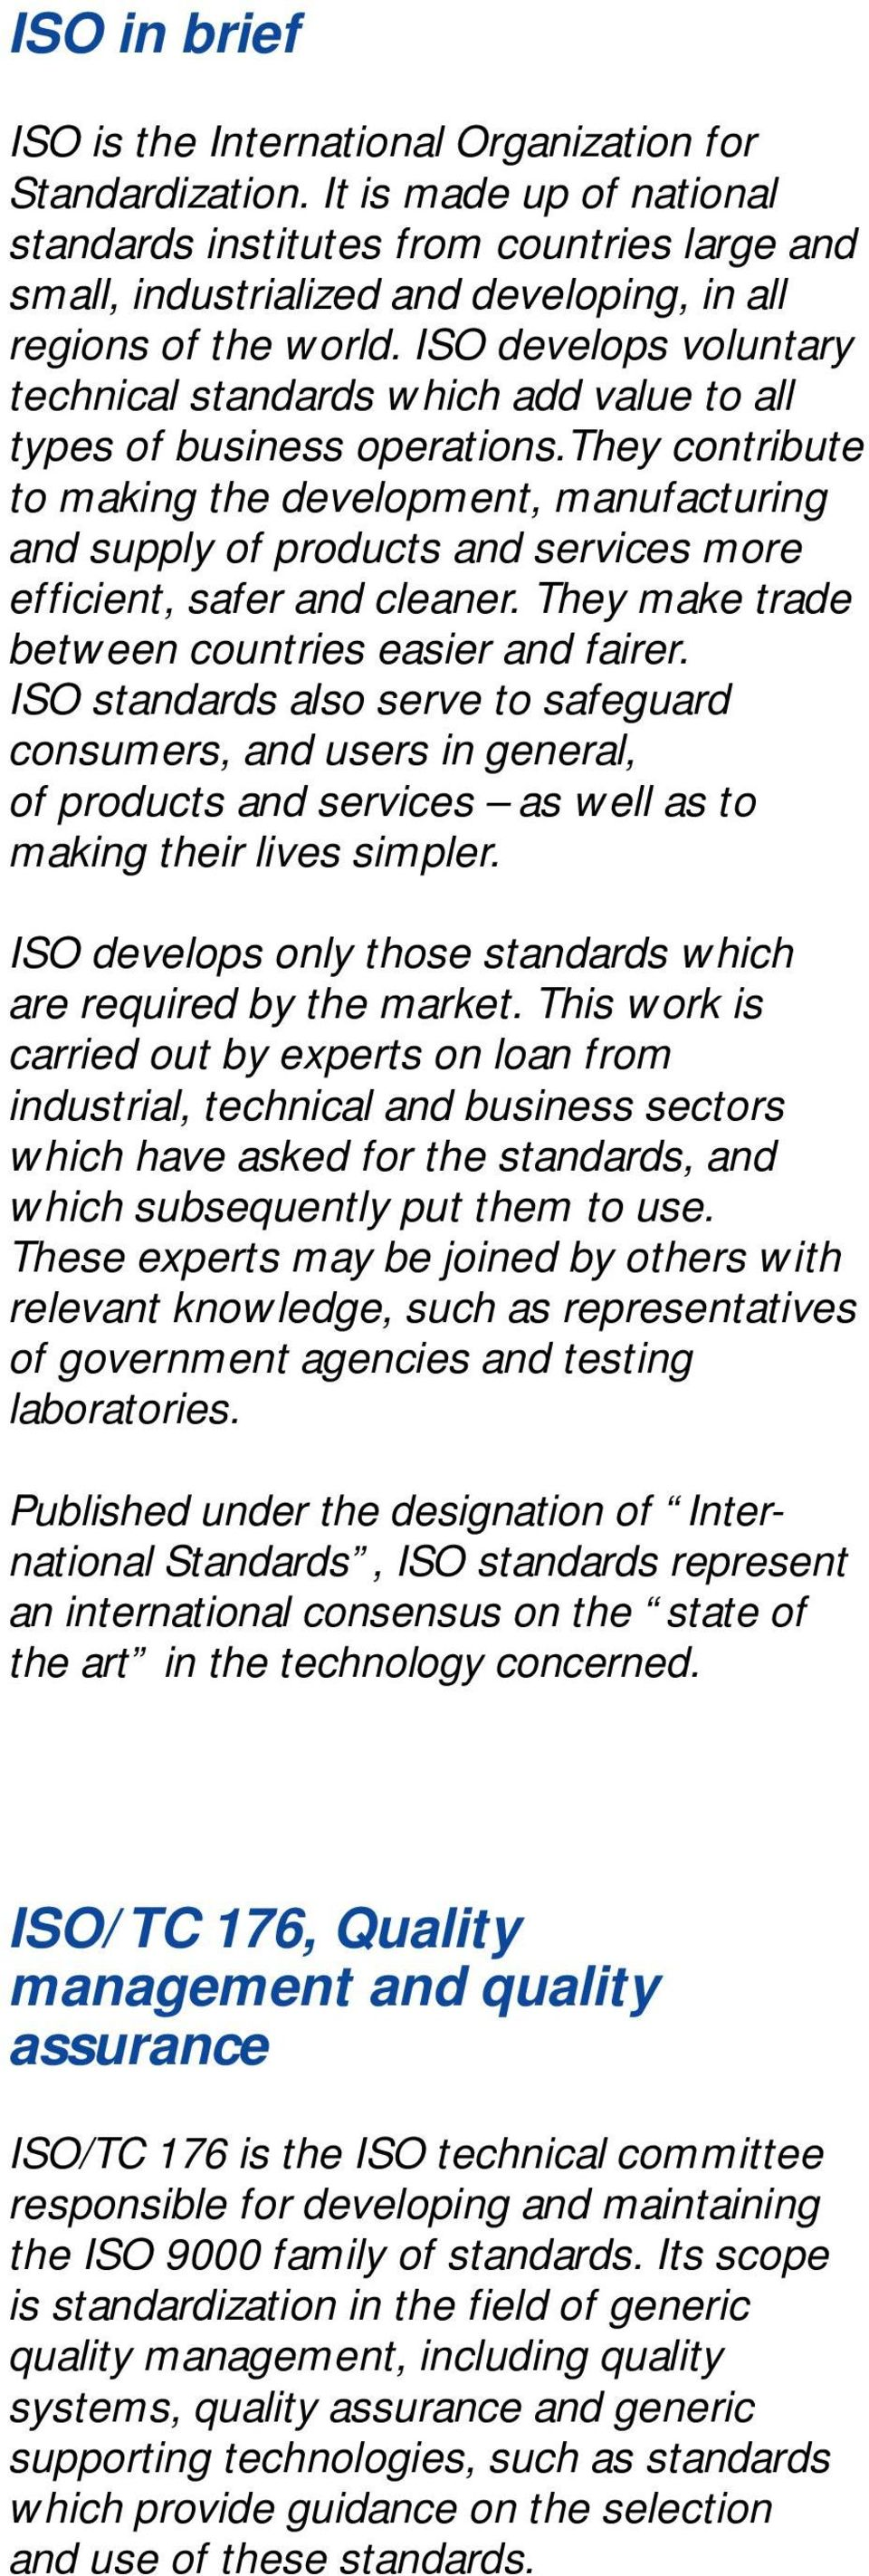 ISO develops voluntary technical standards which add value to all types of business operations.